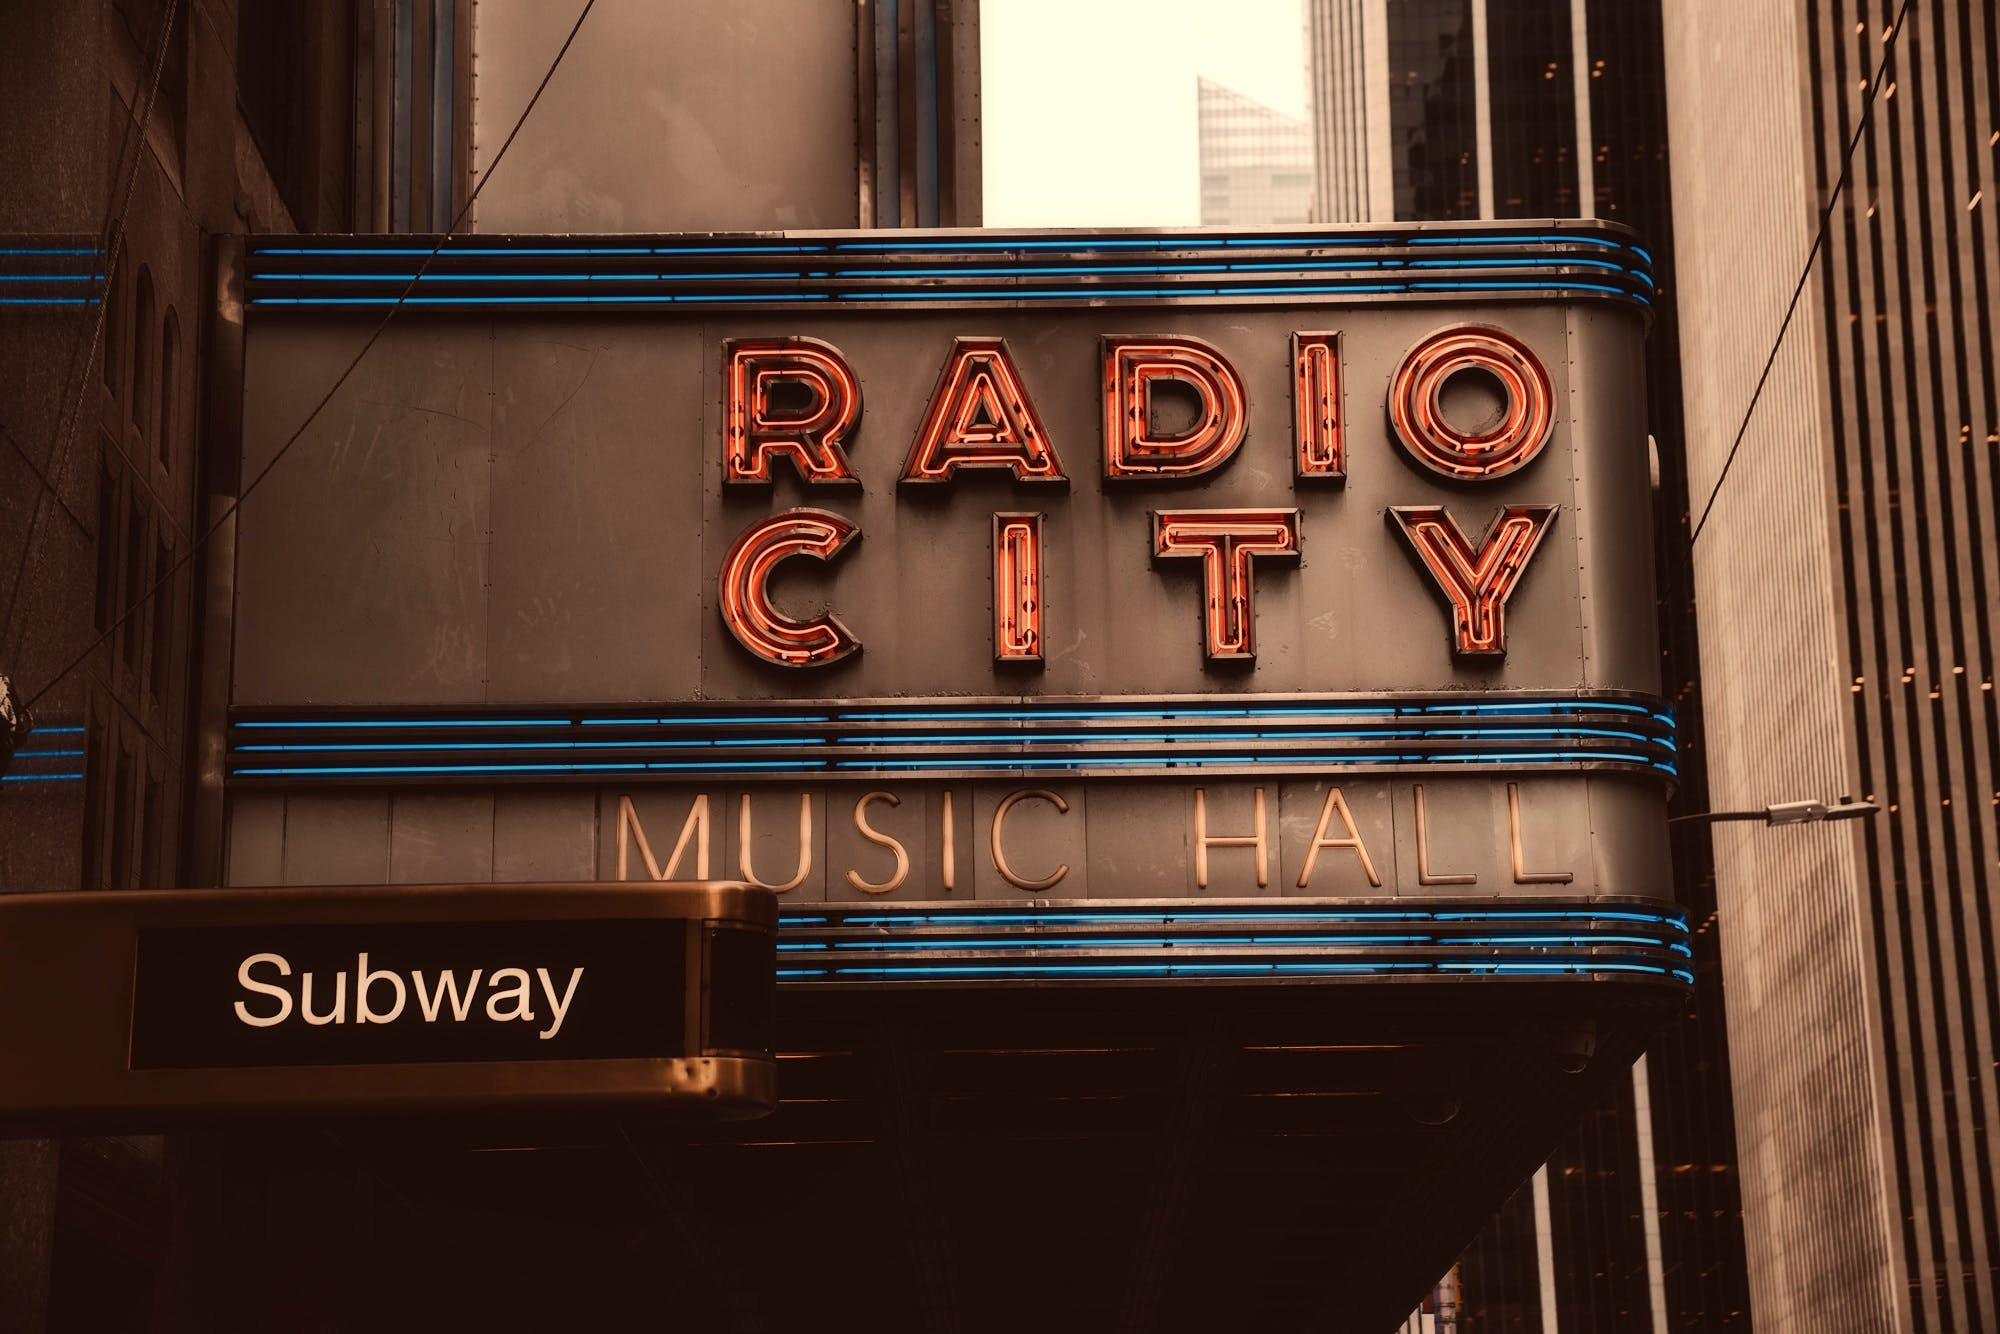 Radio City Music Hall Building